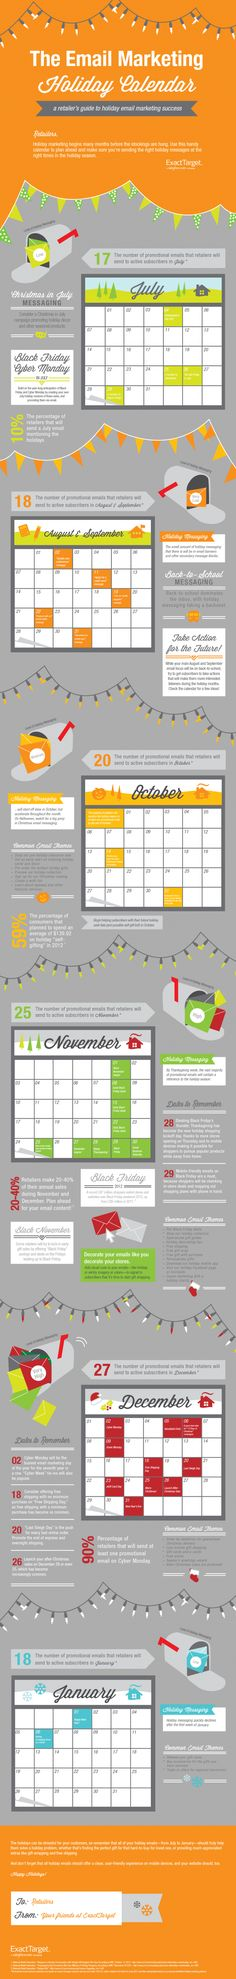 The Email Marketing Holiday Calendar #infographic